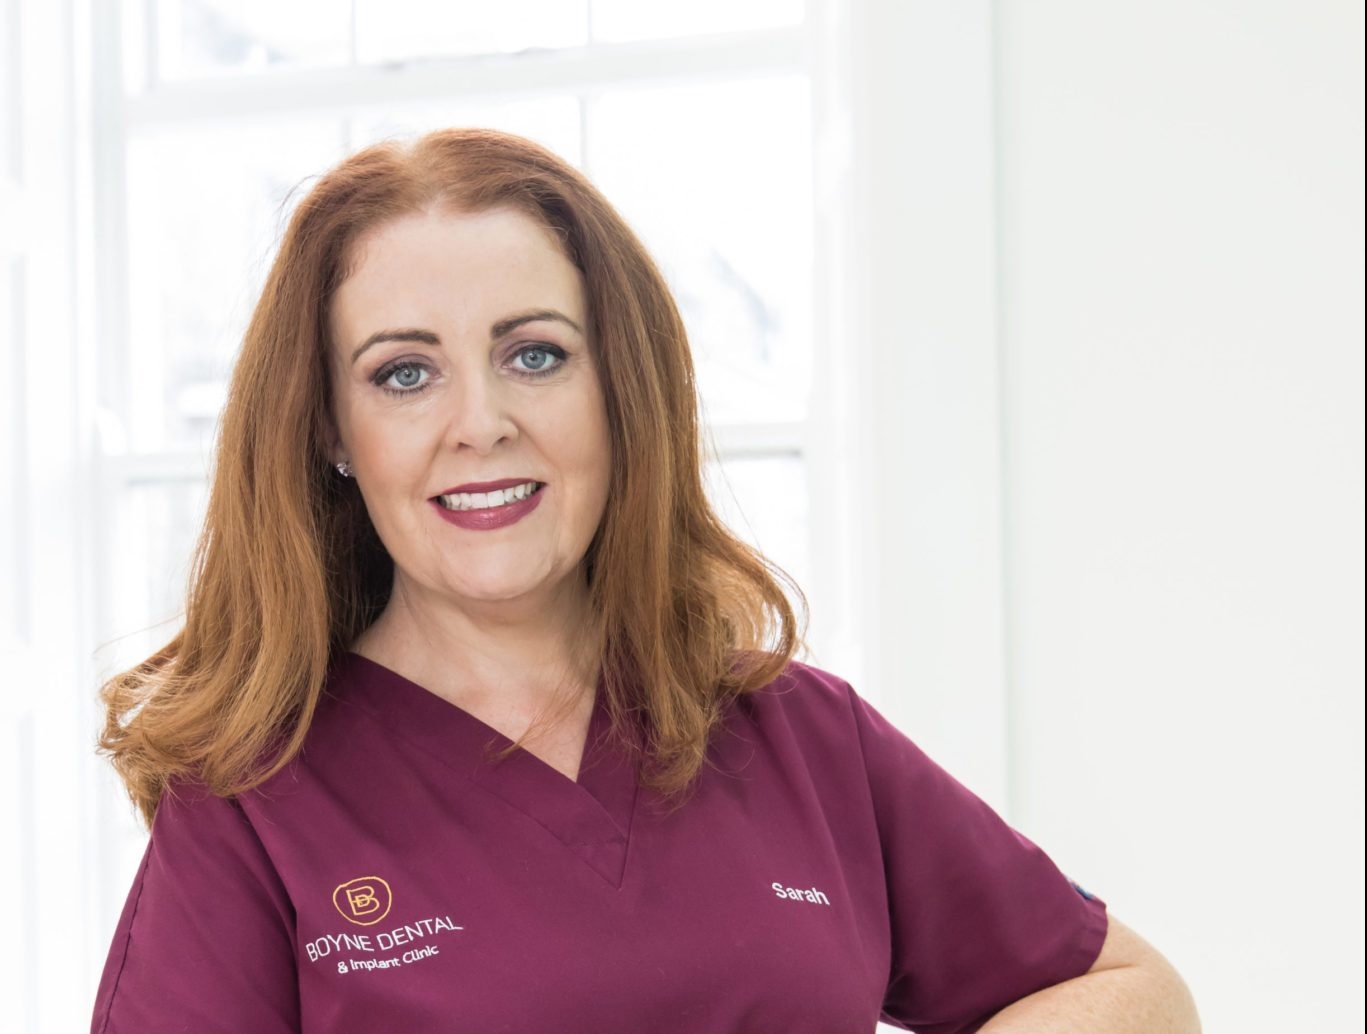 Boyne Dental - Sarah Carbery